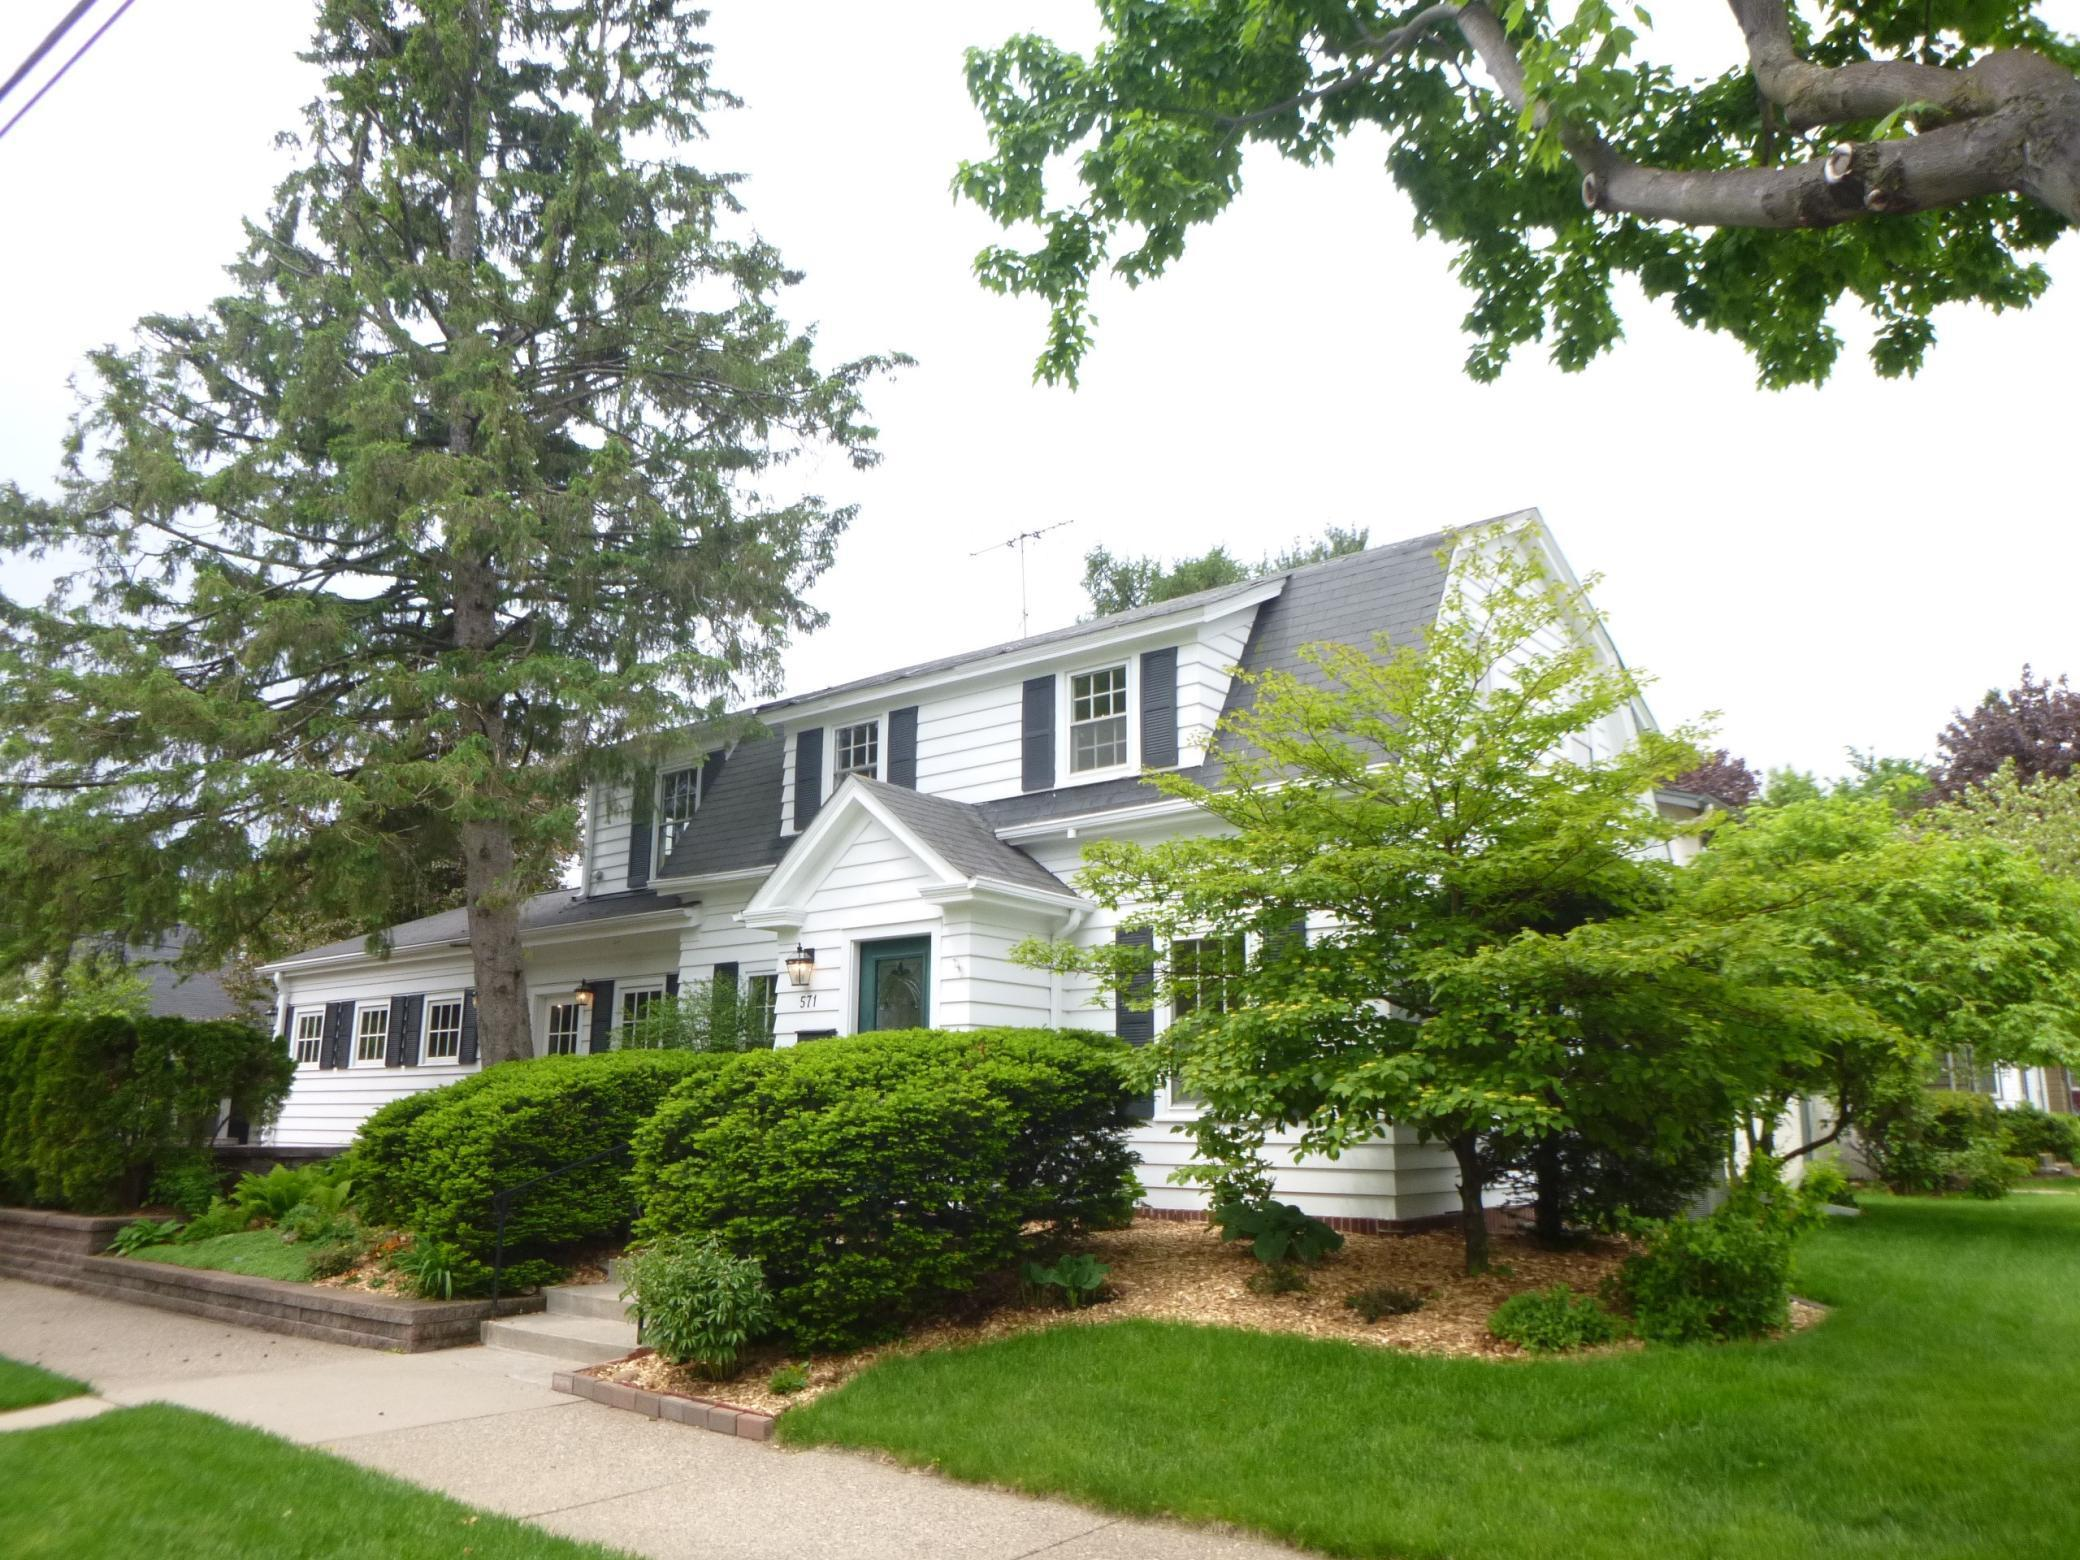 571 Griggs Street S Property Photo - Saint Paul, MN real estate listing